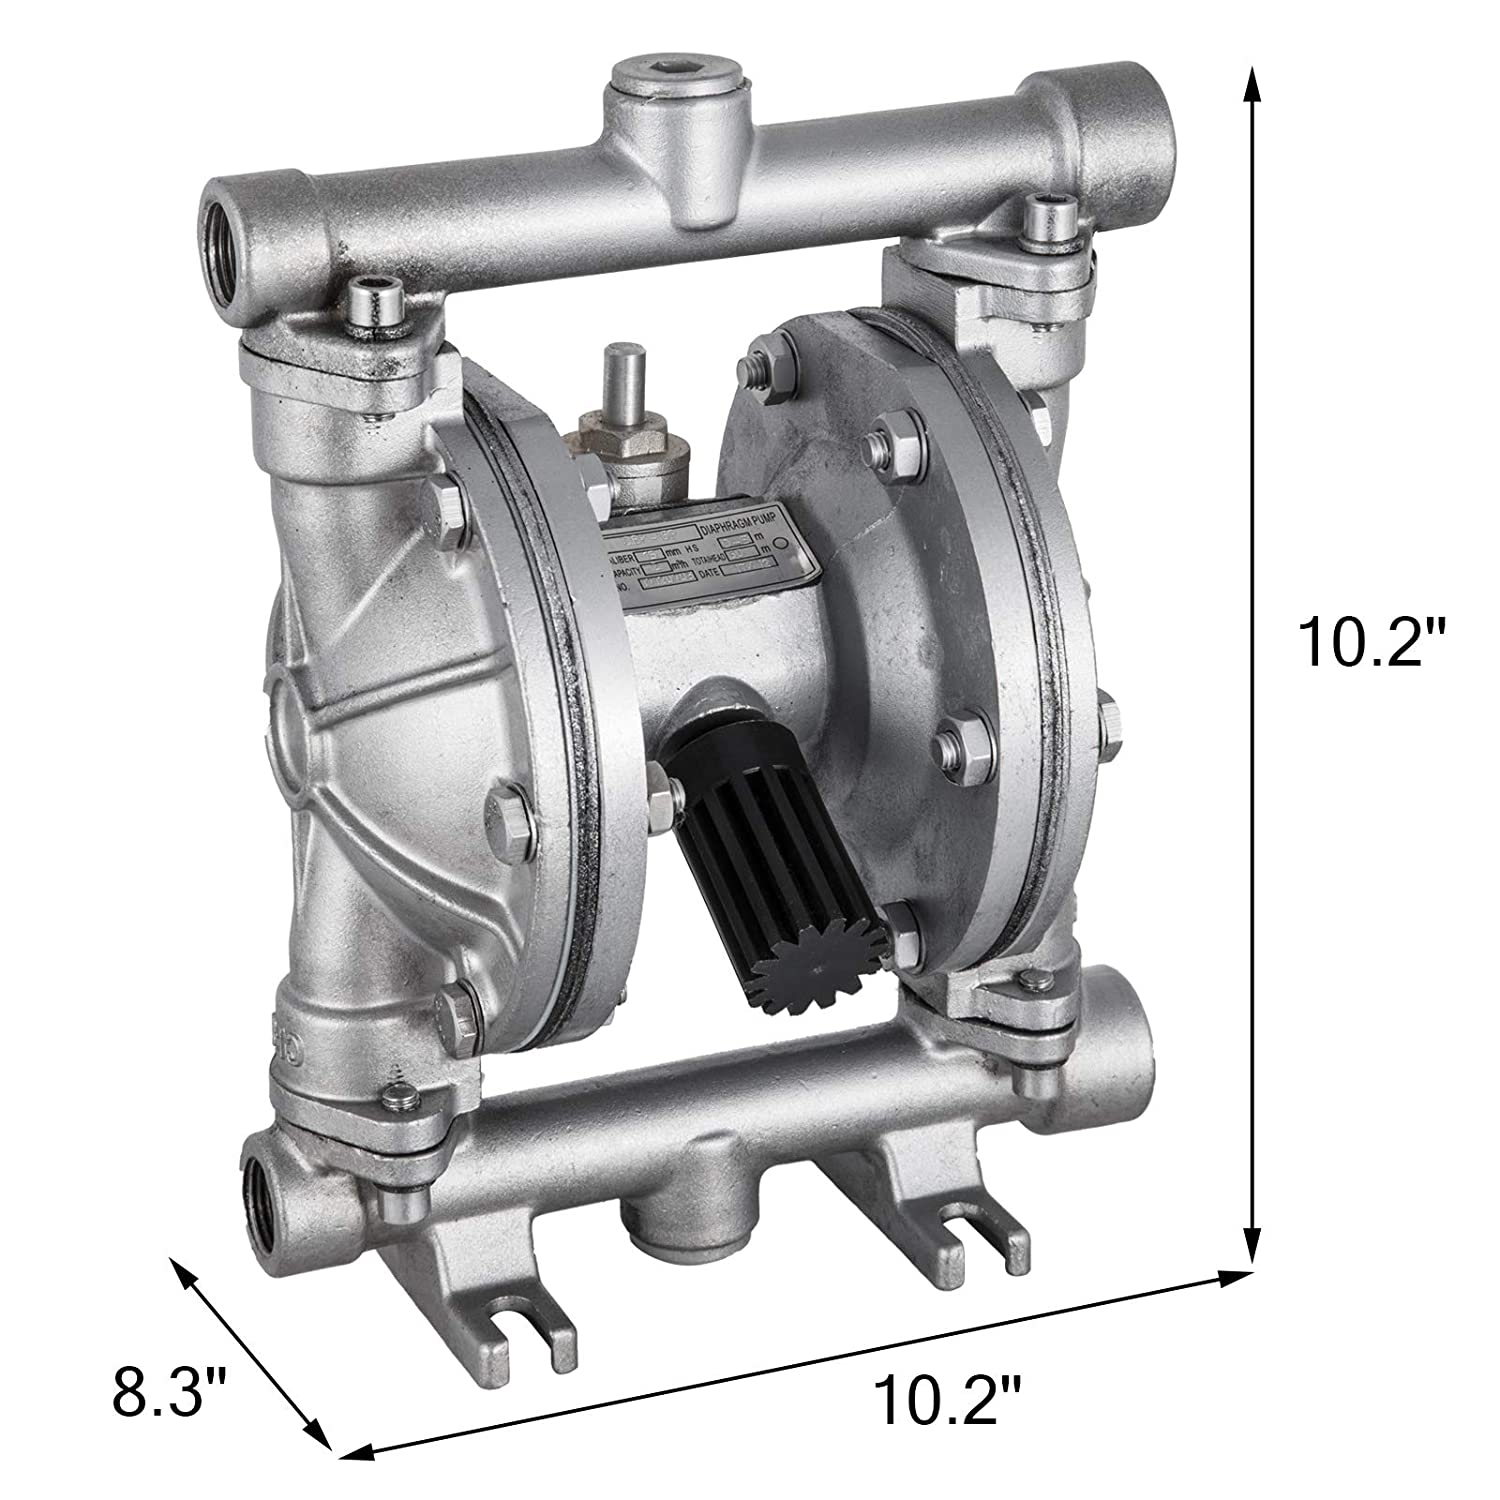 Happybuy Air-Operated Double Diaphragm Pump 1 inch Inlet /& Outlet Aluminum 35 GPM Max 120PSI for Chemical Industrial Use QBY4-25L-1